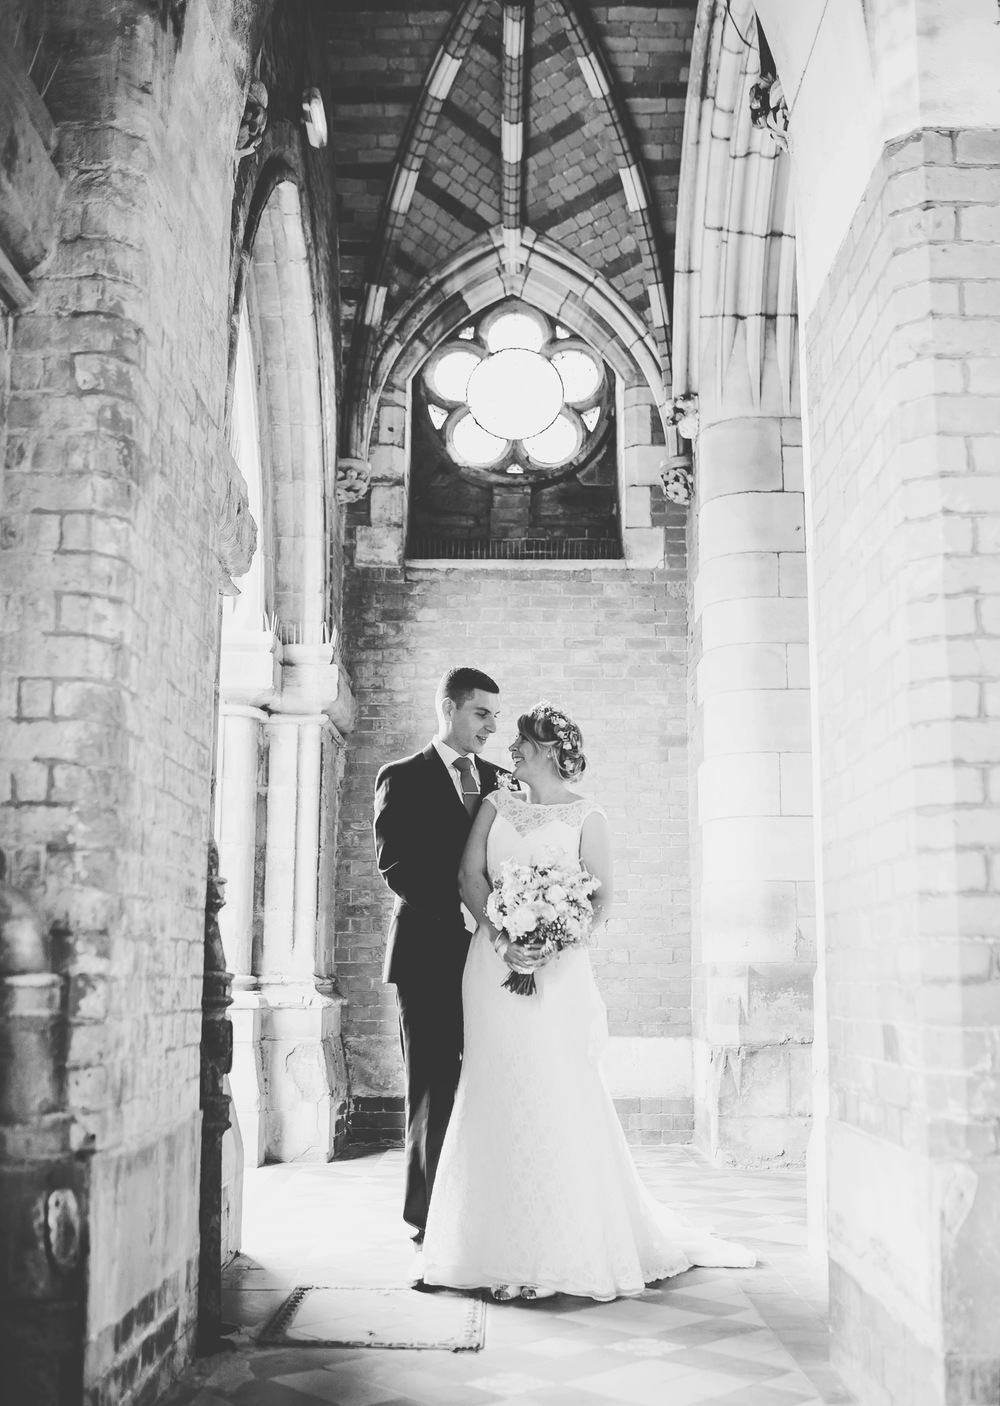 Black and white photograph, the bride and groom in the Gorton Monastery.